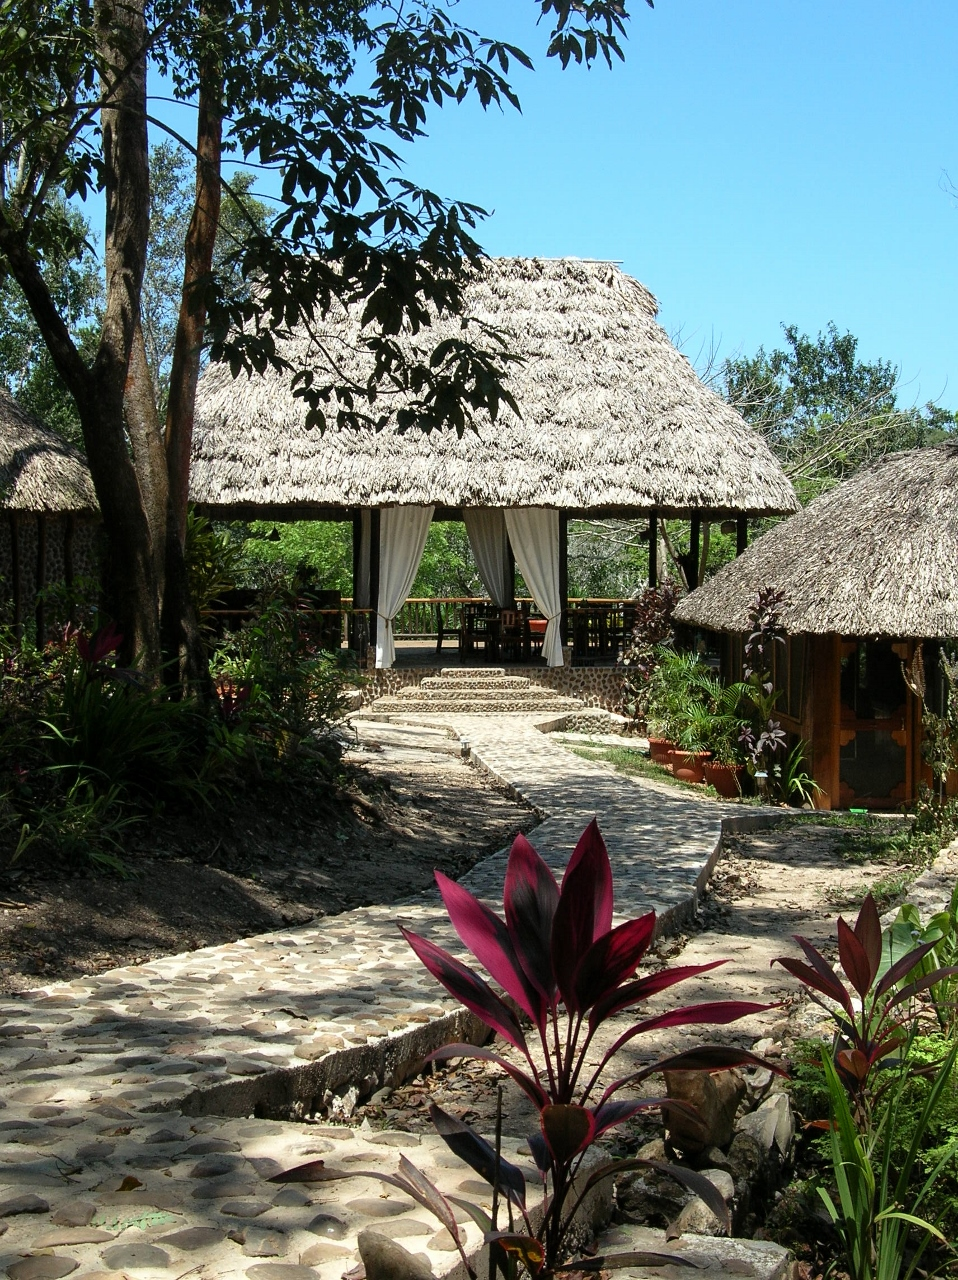 Table Rock Lodge - Belize Jungle Lodges -Cayo District - All Inclusive Vacation Packages to Belize - SabreWing Travel